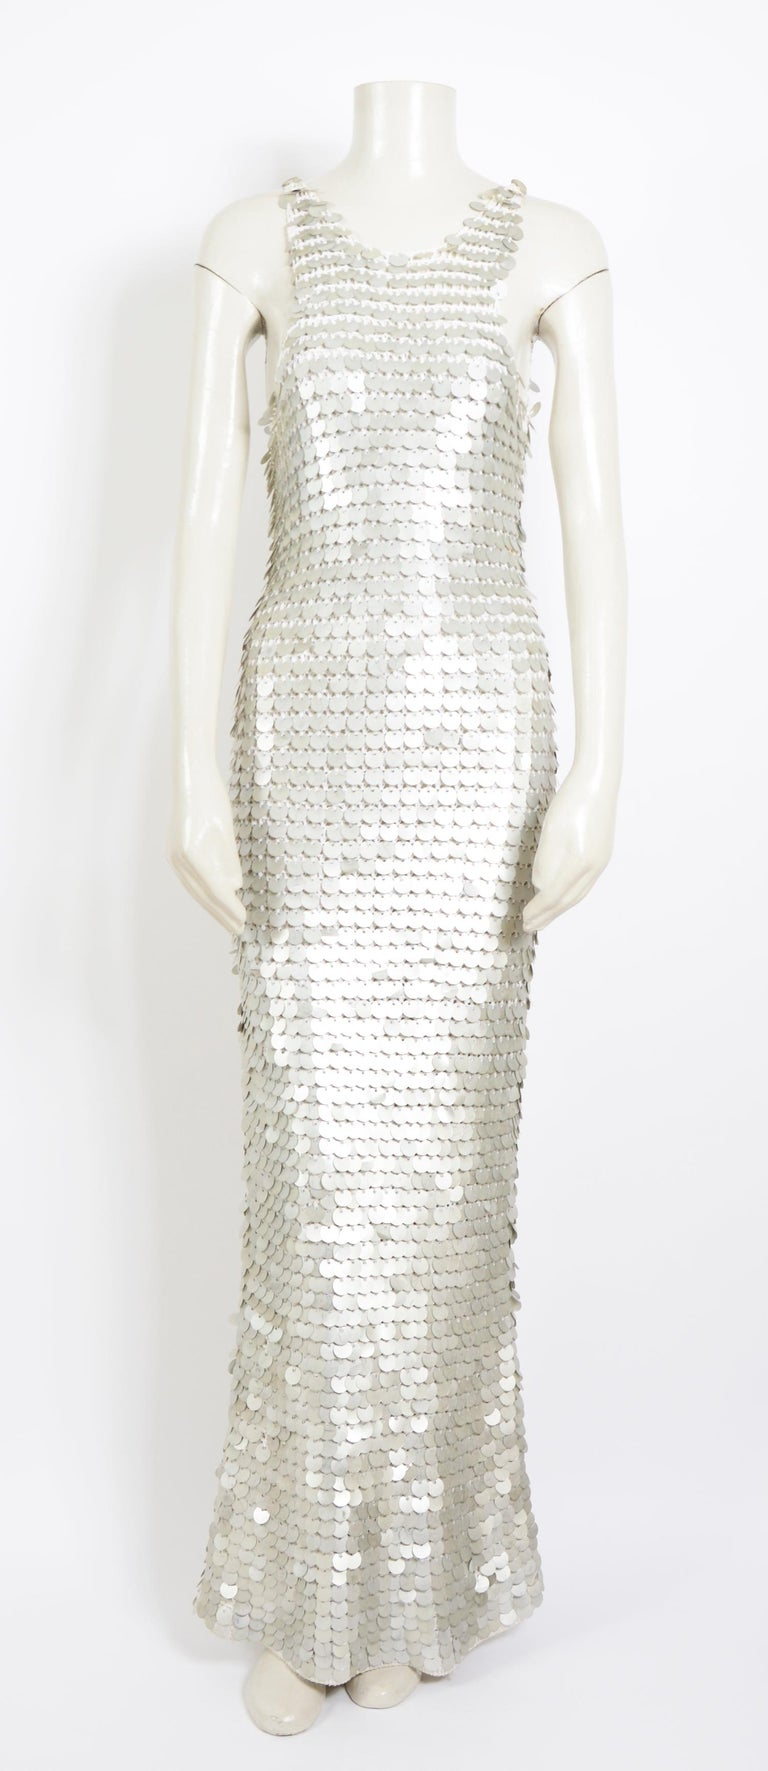 Late 60's early 70's sheer white crochet slip dress, adorned with Paco Rabanne style silver or metallic disc or sequins. This fabulous dress is hand-crocheted from white cotton yarn. Hundreds of oversized Paco Rabanne style metallic disc are affixed